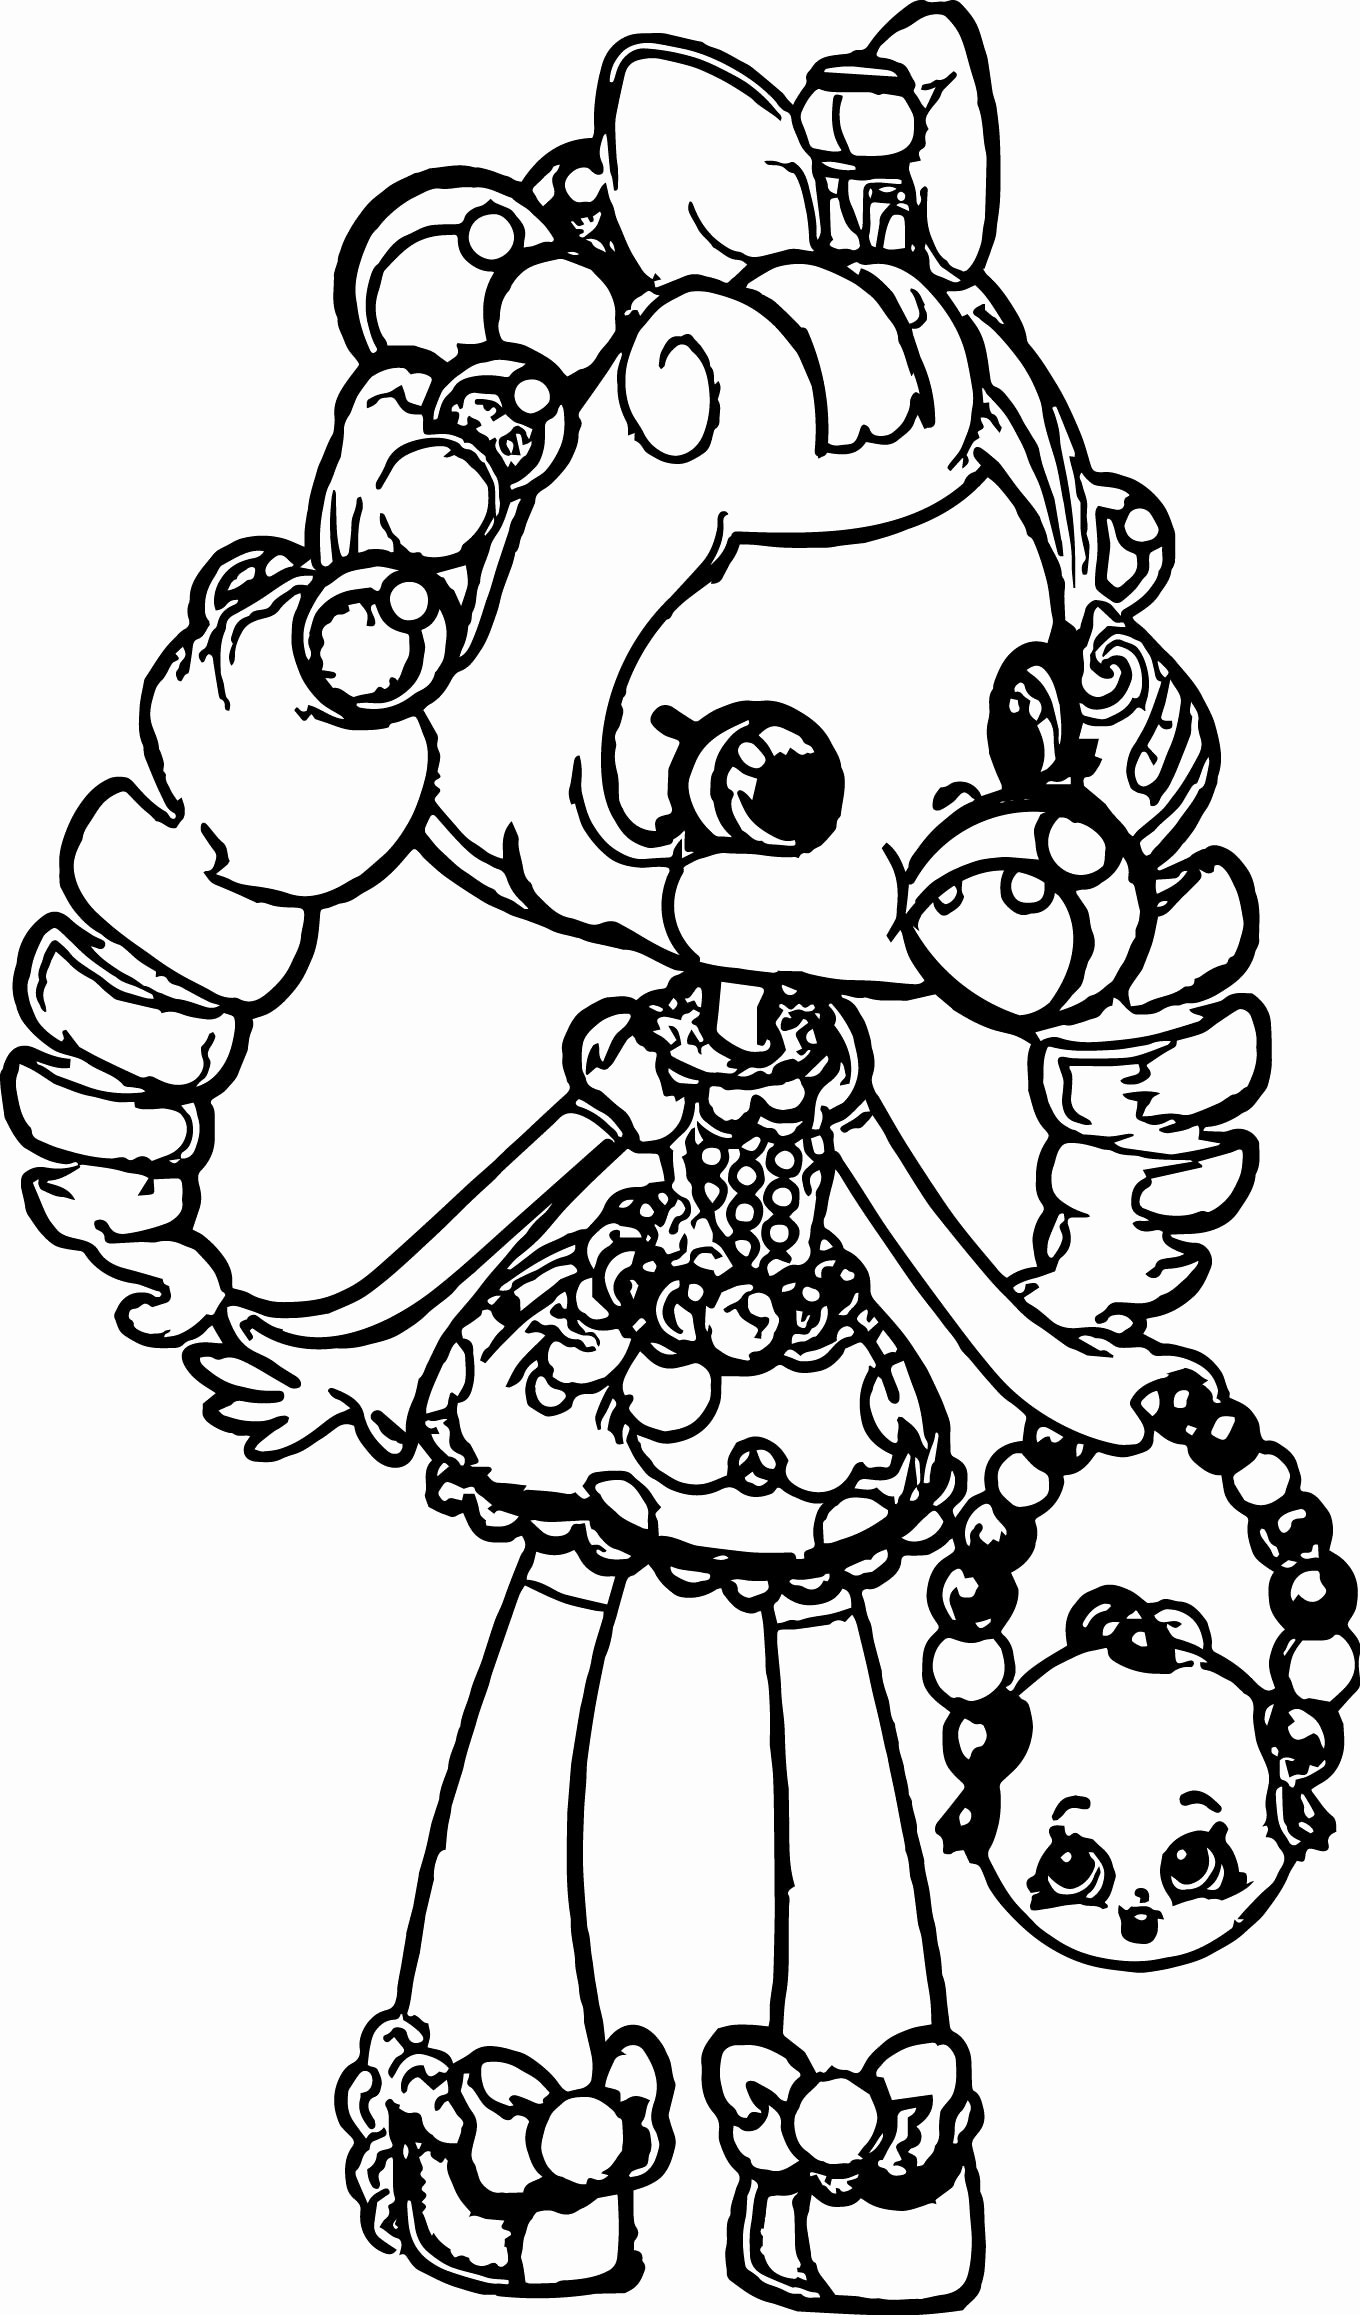 Shoppie Dolls Coloring Pages At Getcolorings